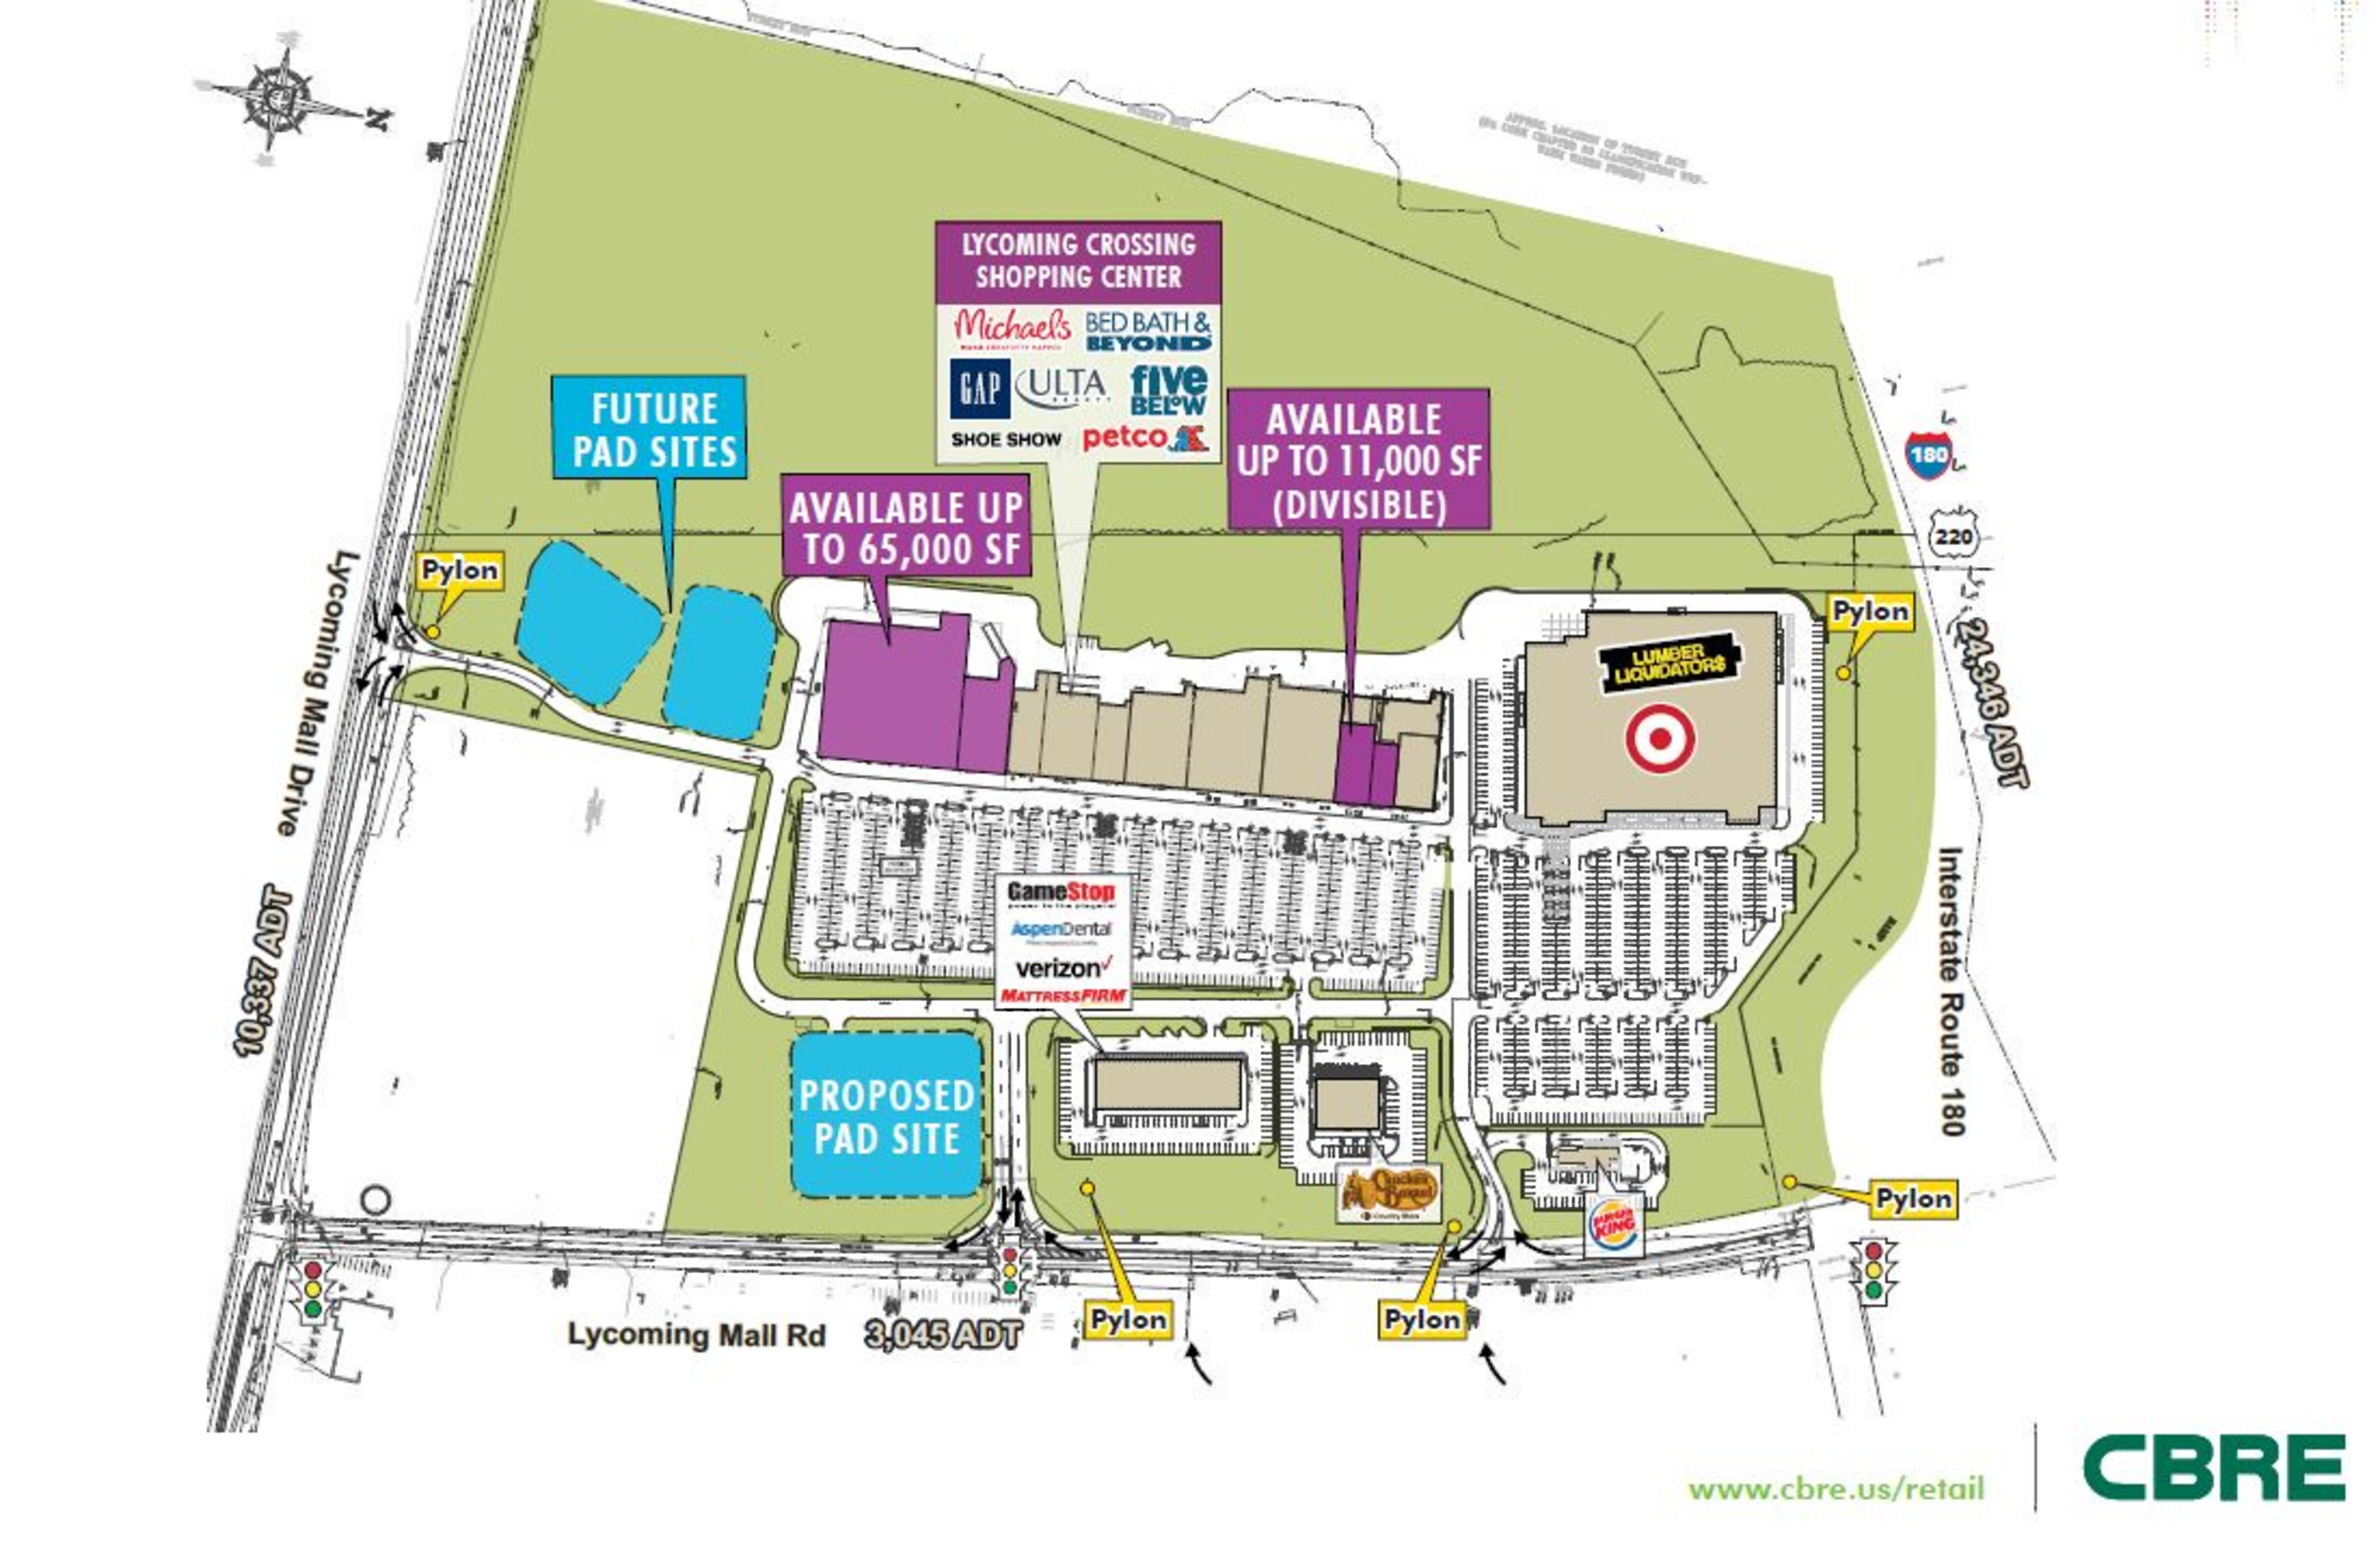 Lycoming Crossing Shopping Center: site plan